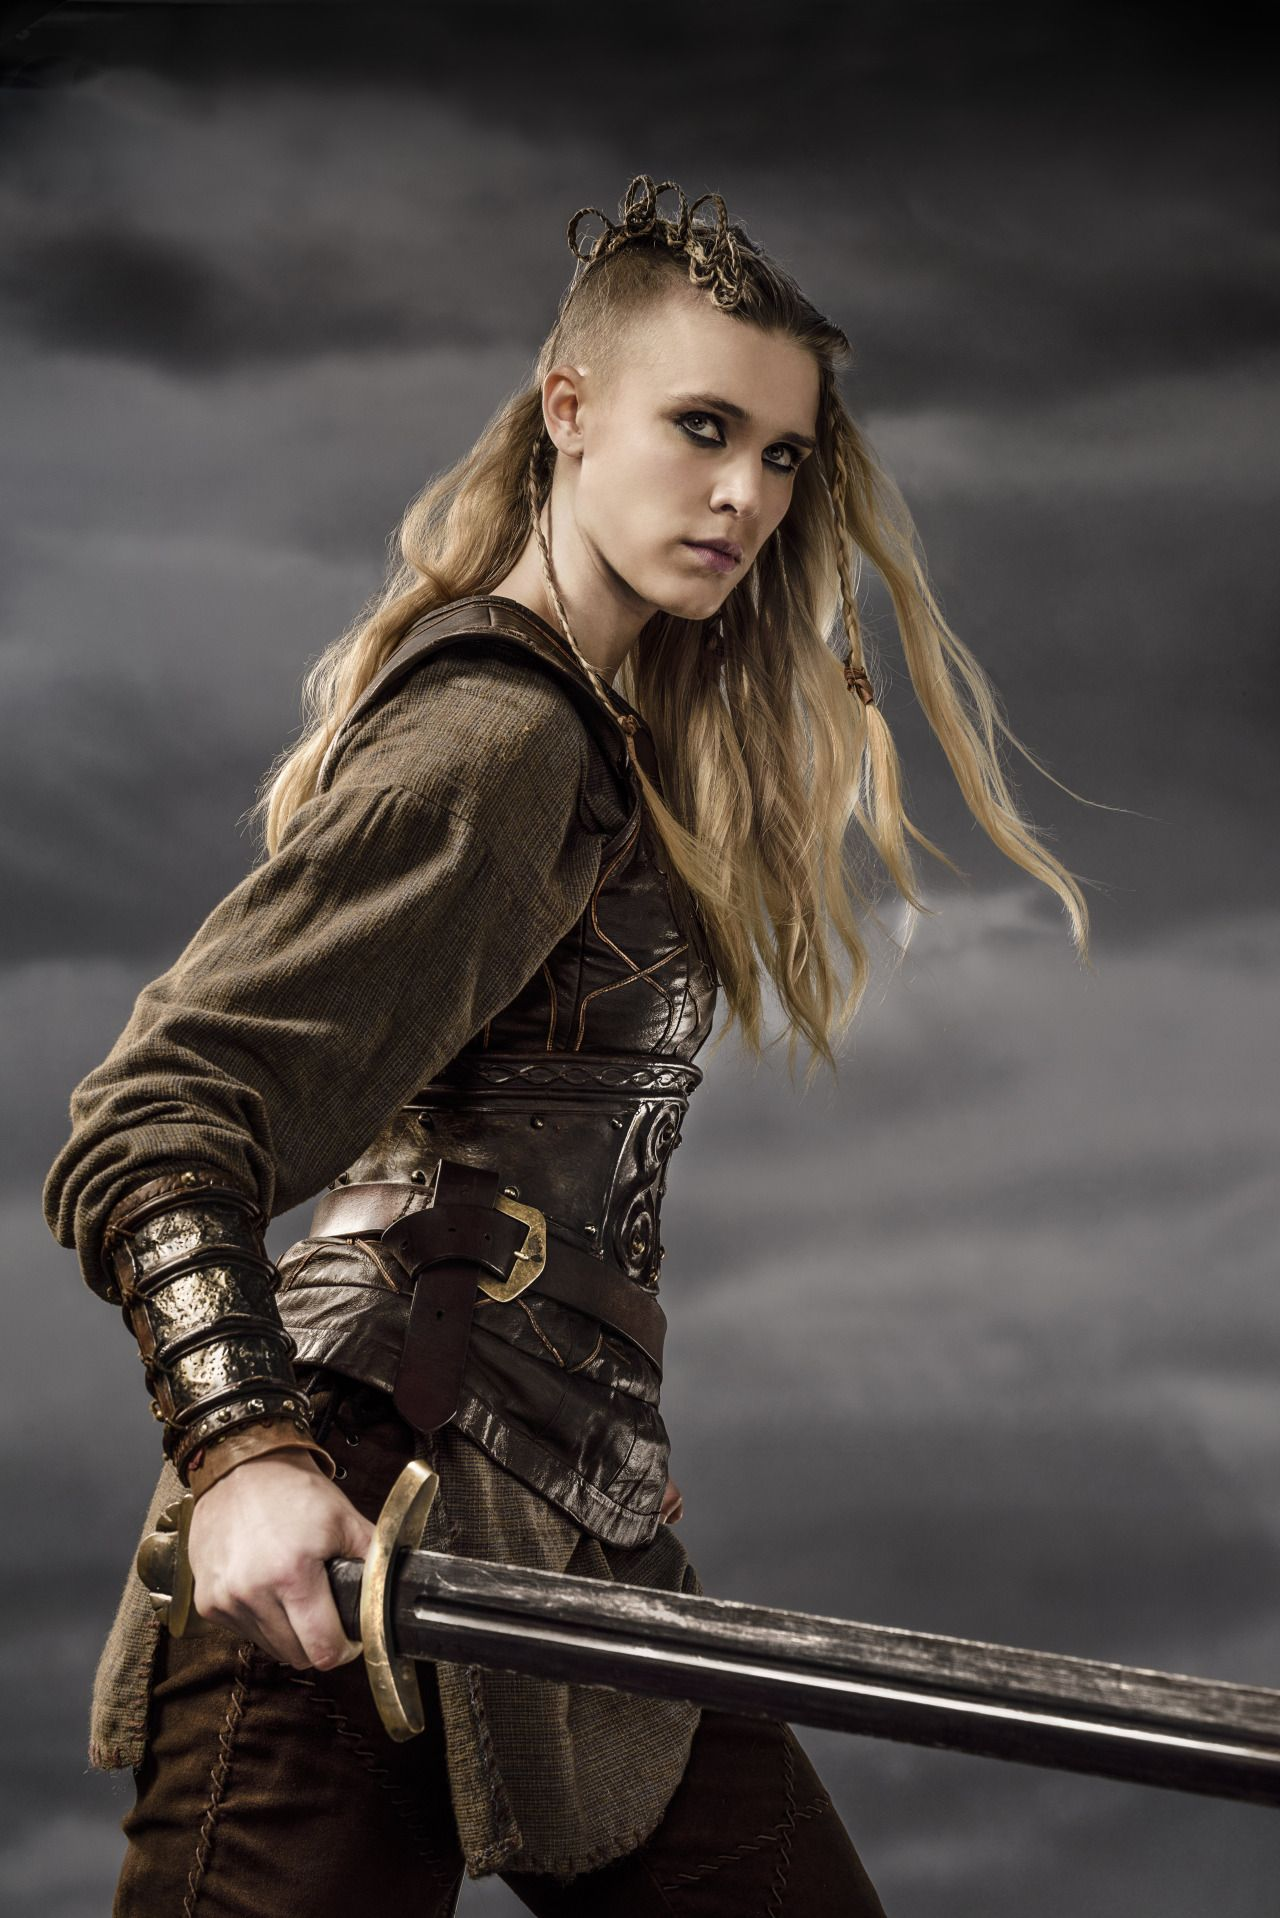 Vikings iphone wallpaper tumblr - Calime91 Vikings Season 3 Character Runn